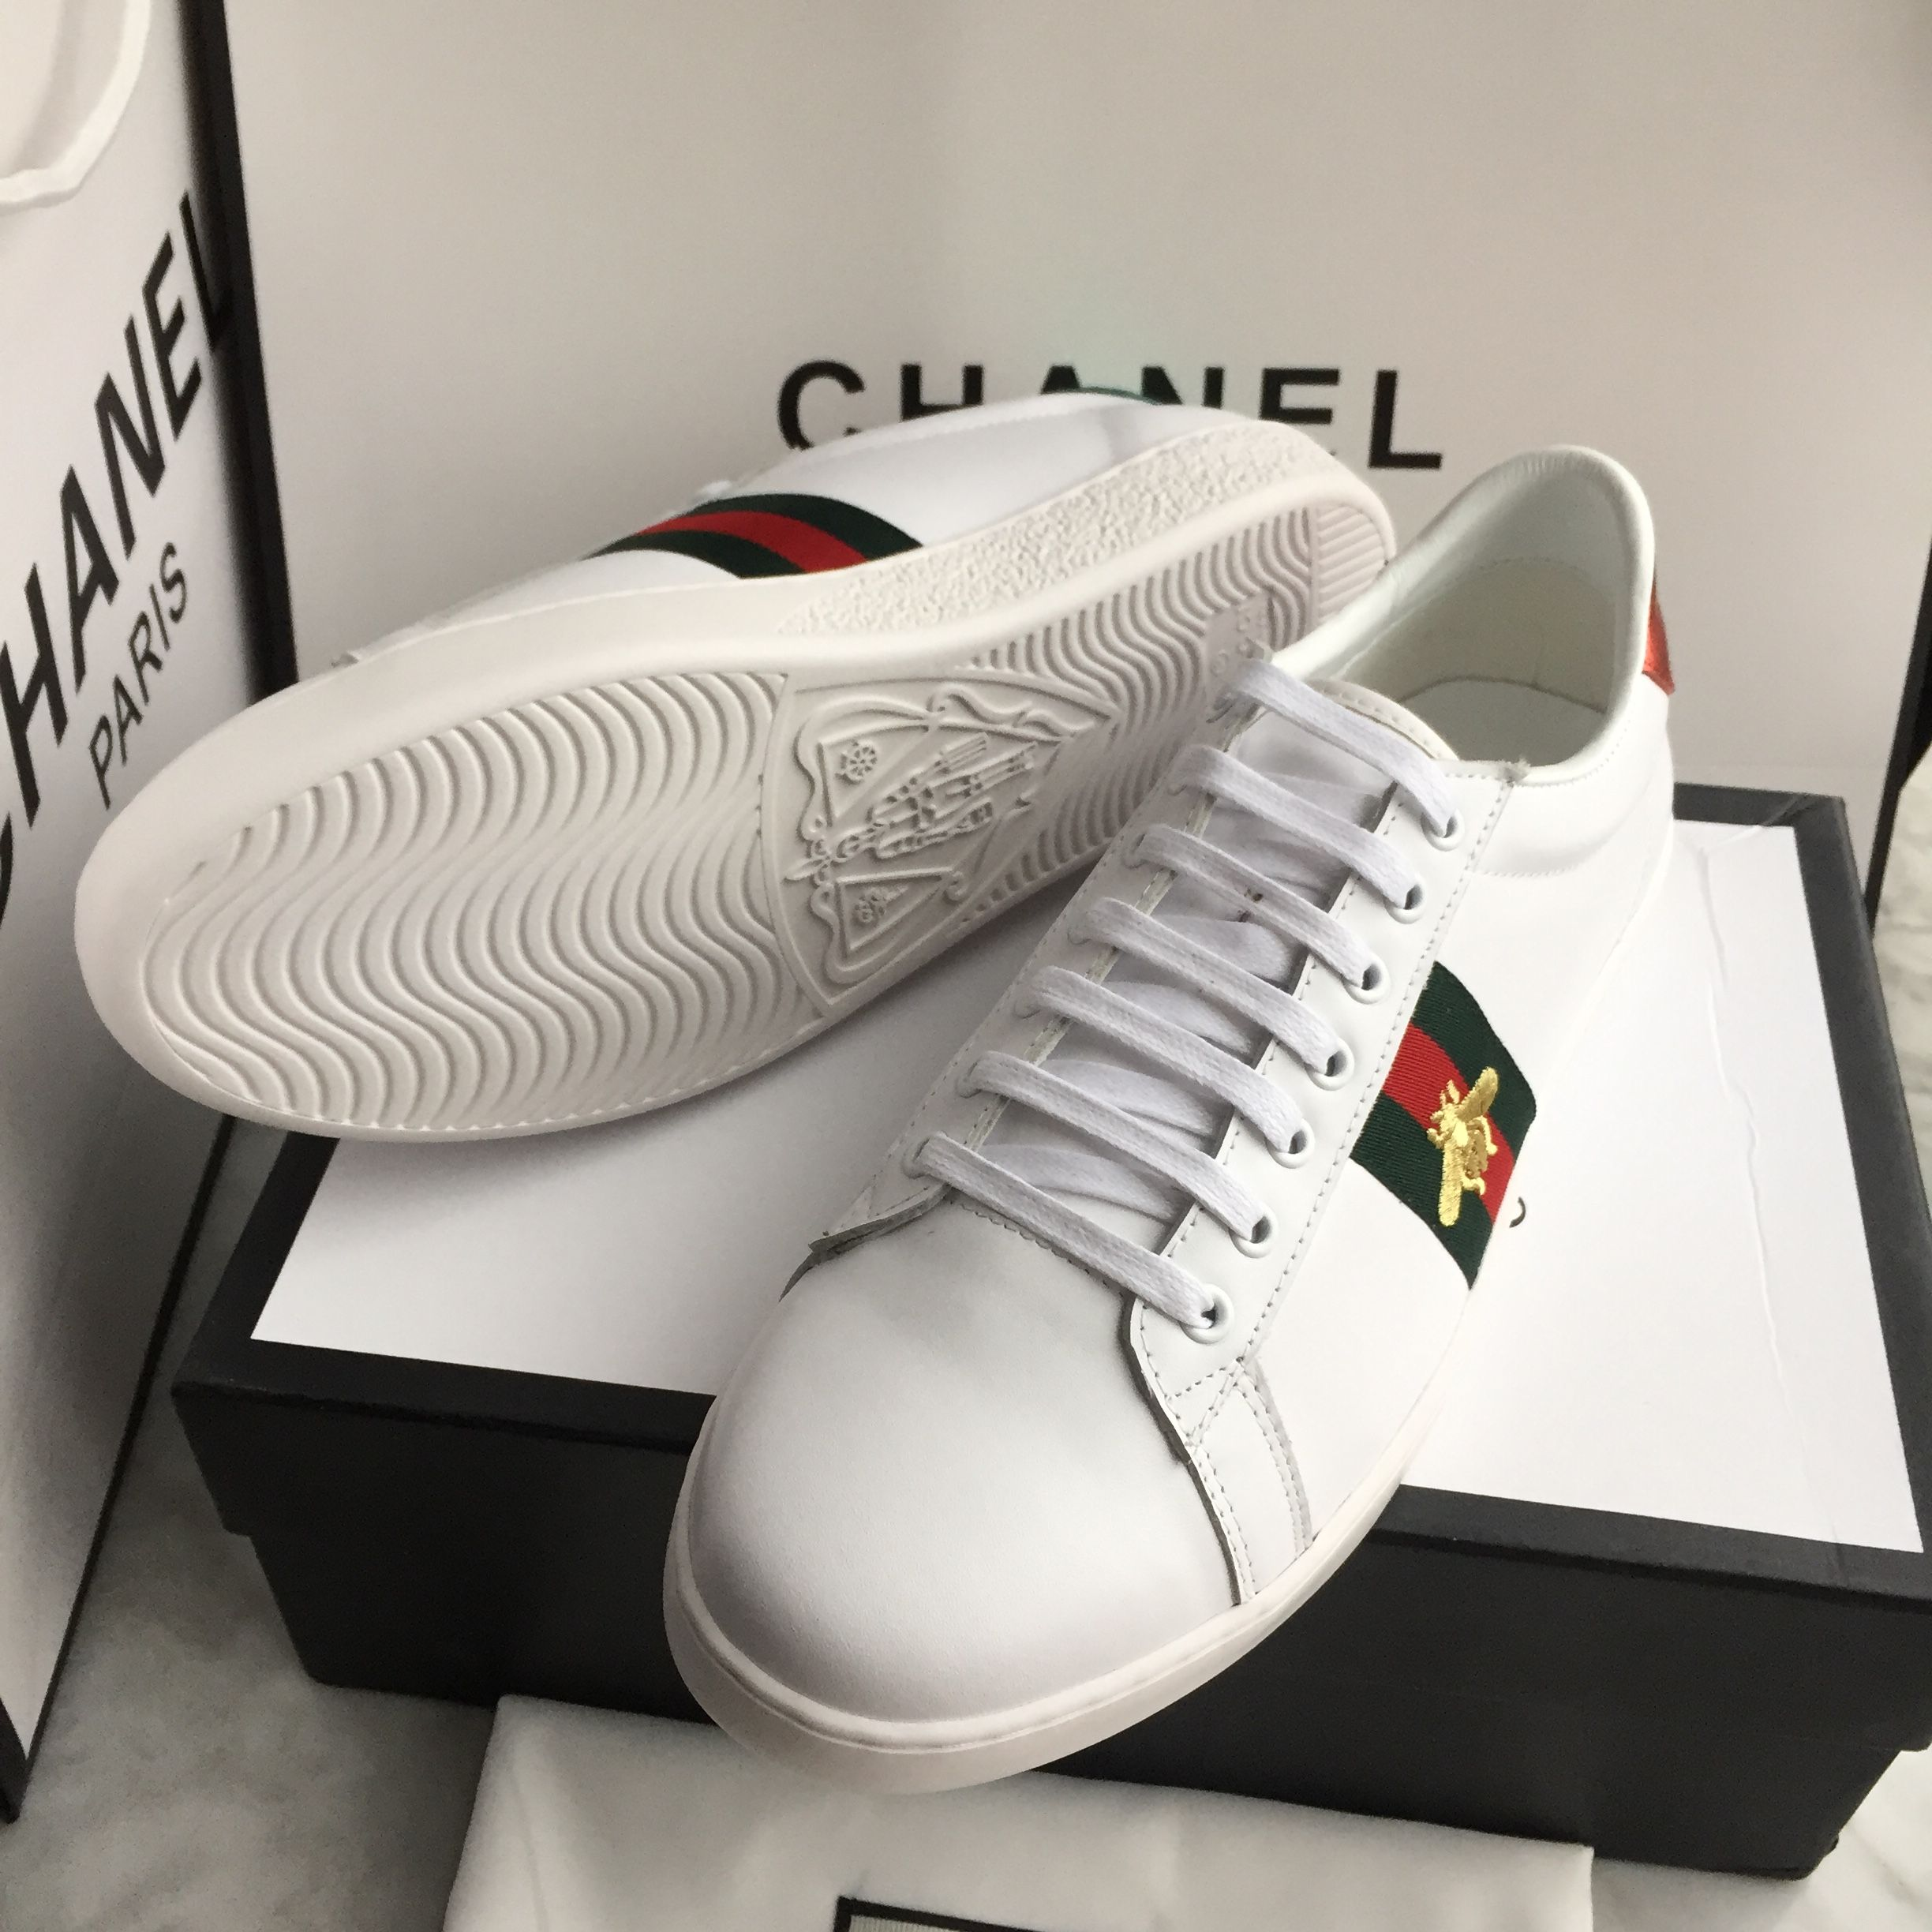 06991c705e4 Gucci unisex woman man shoes white sneakers bee design